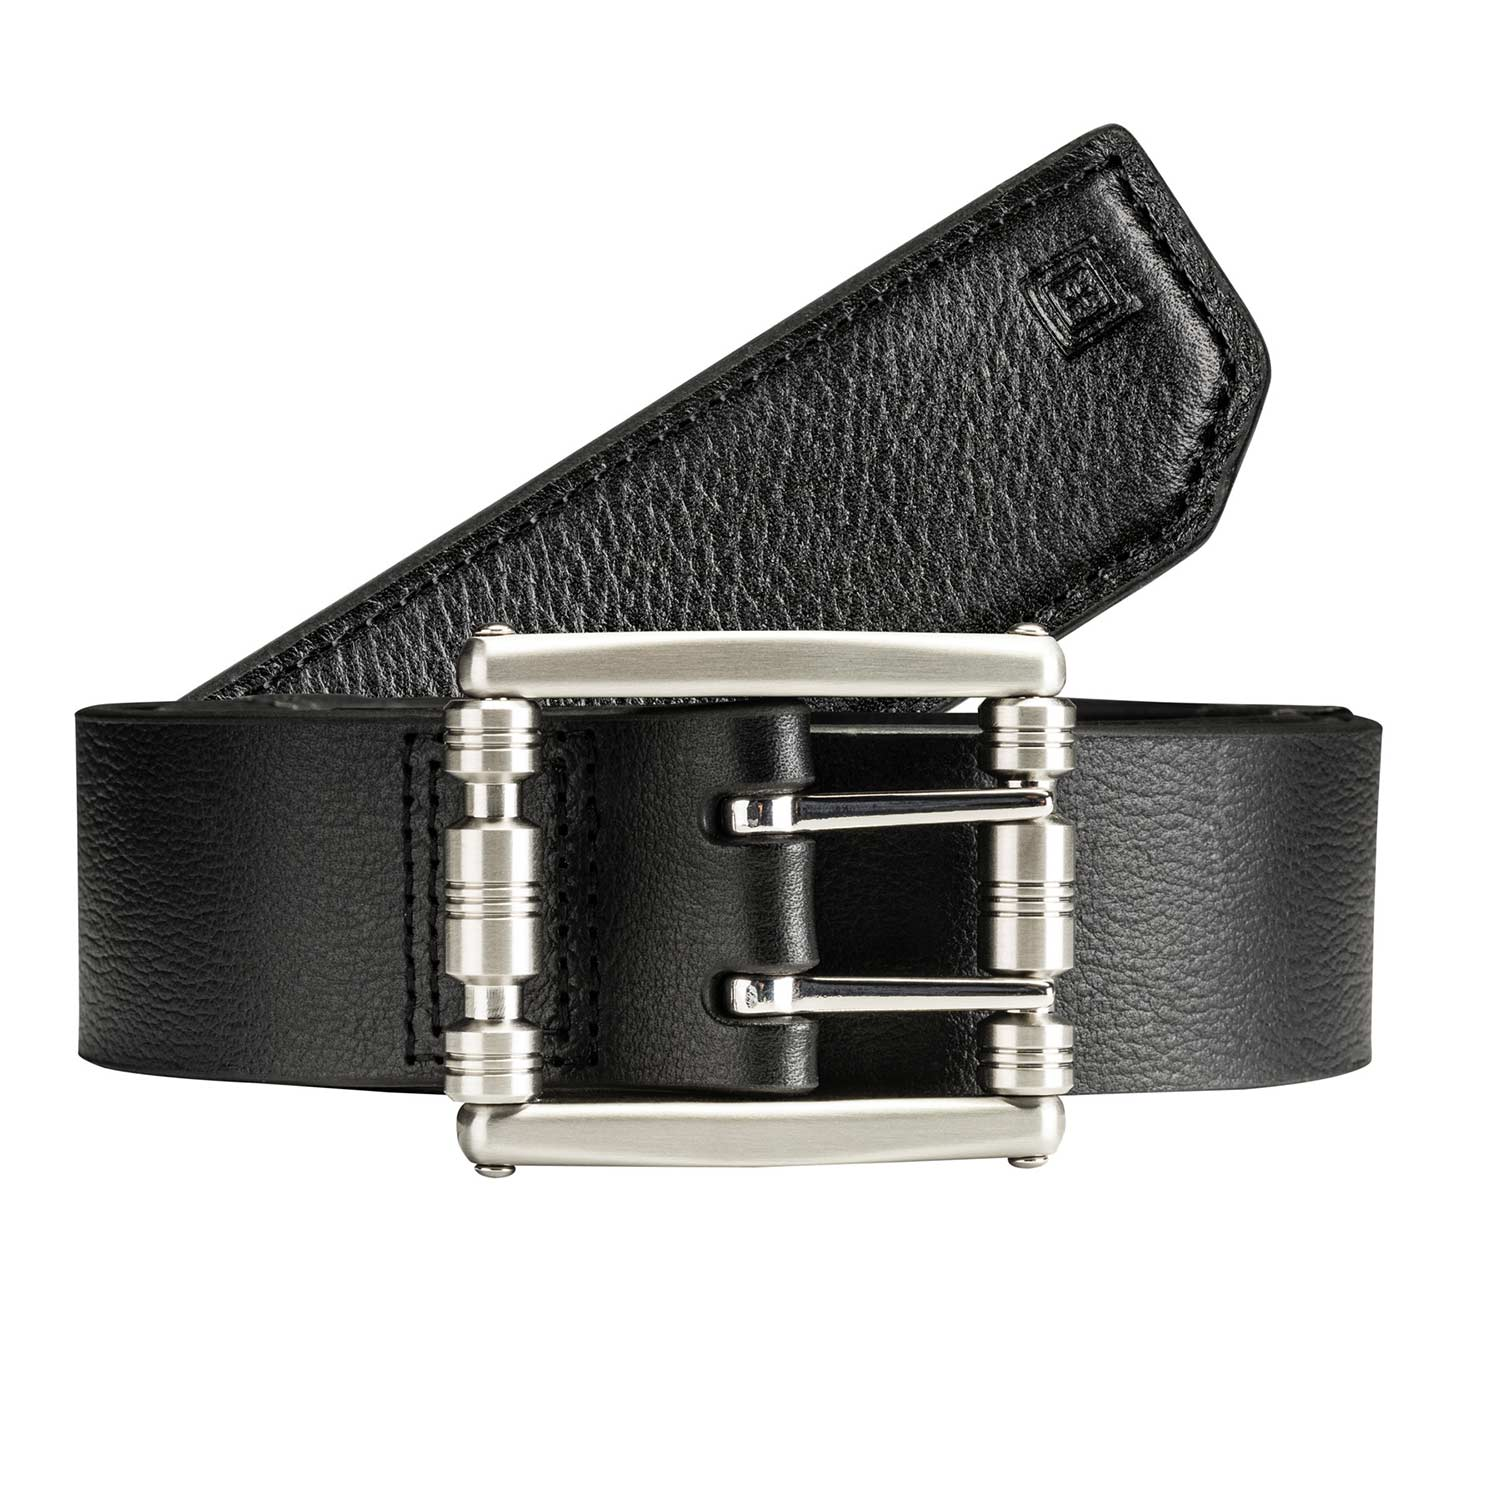 5.11 Stay Sharp Leather Belt